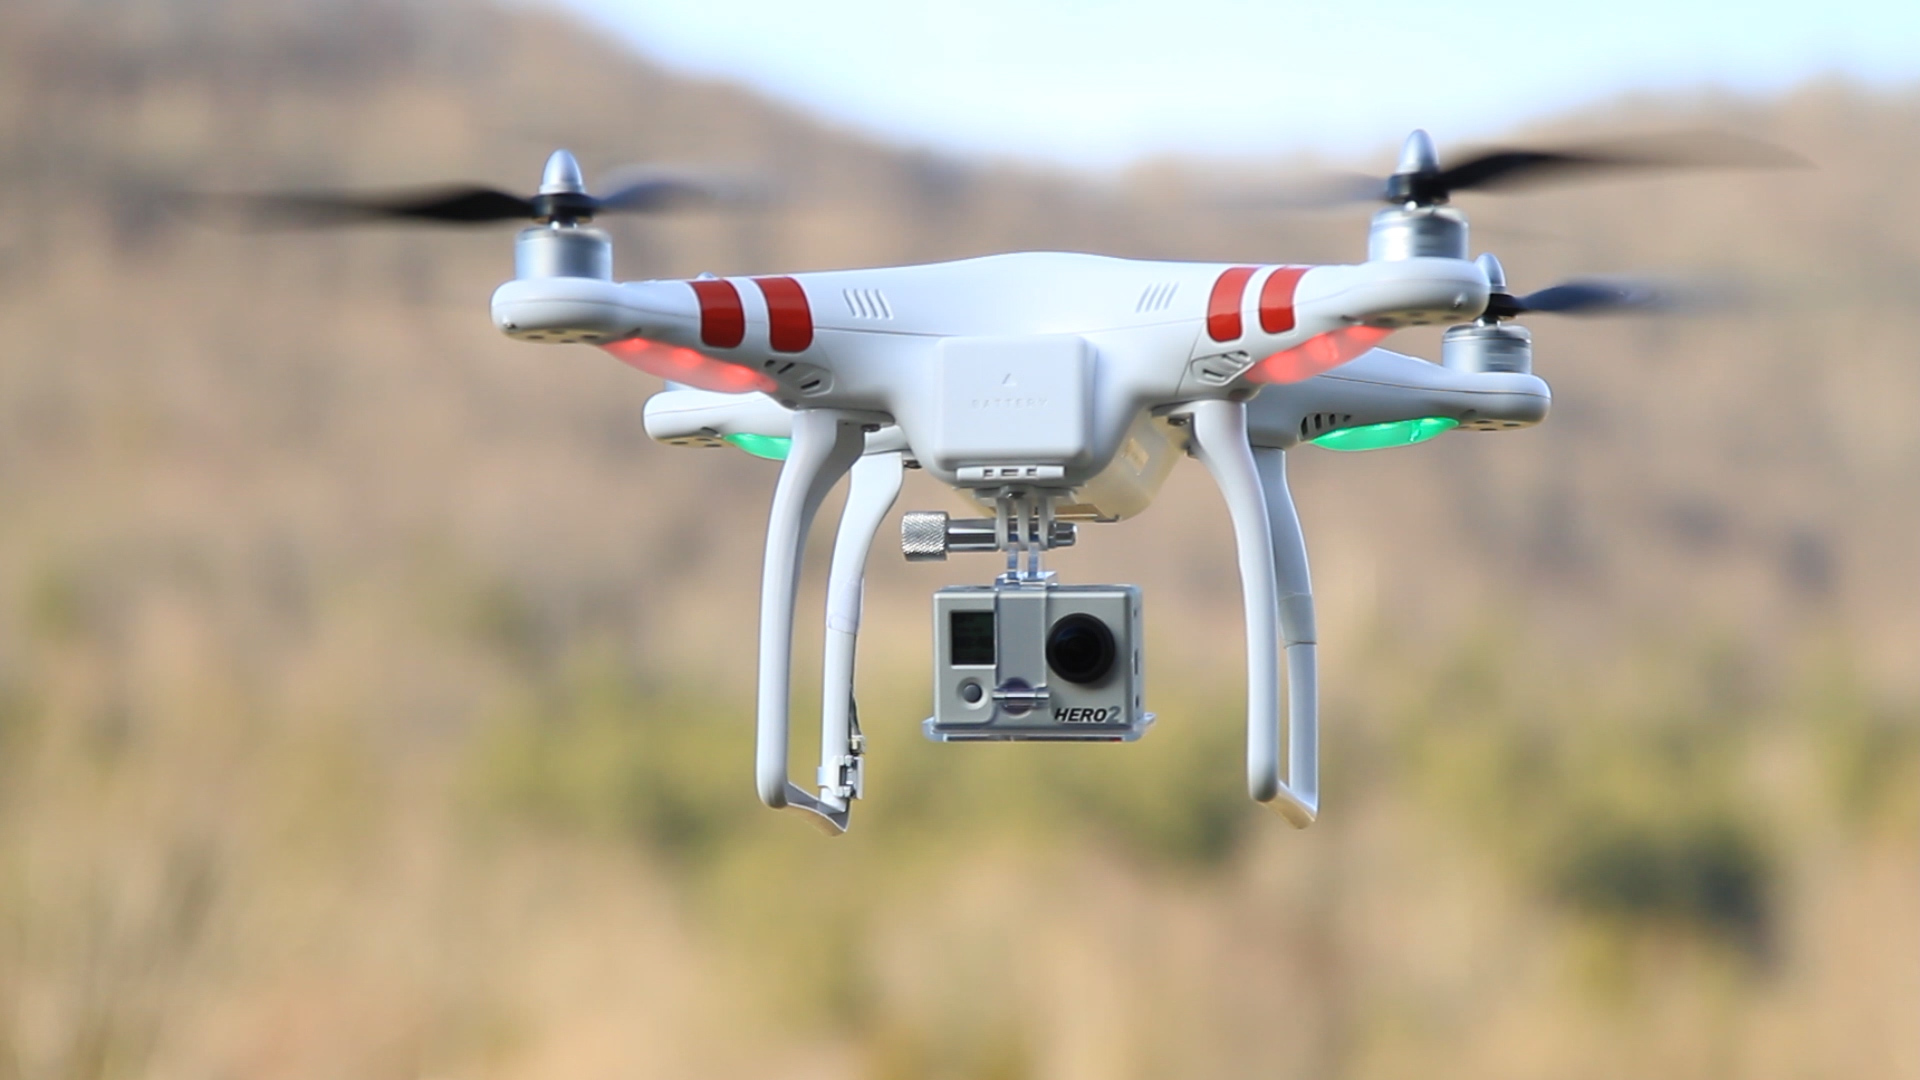 You Might Be Powerless to Stop Drone From Flying on or Hovering Over Your Property